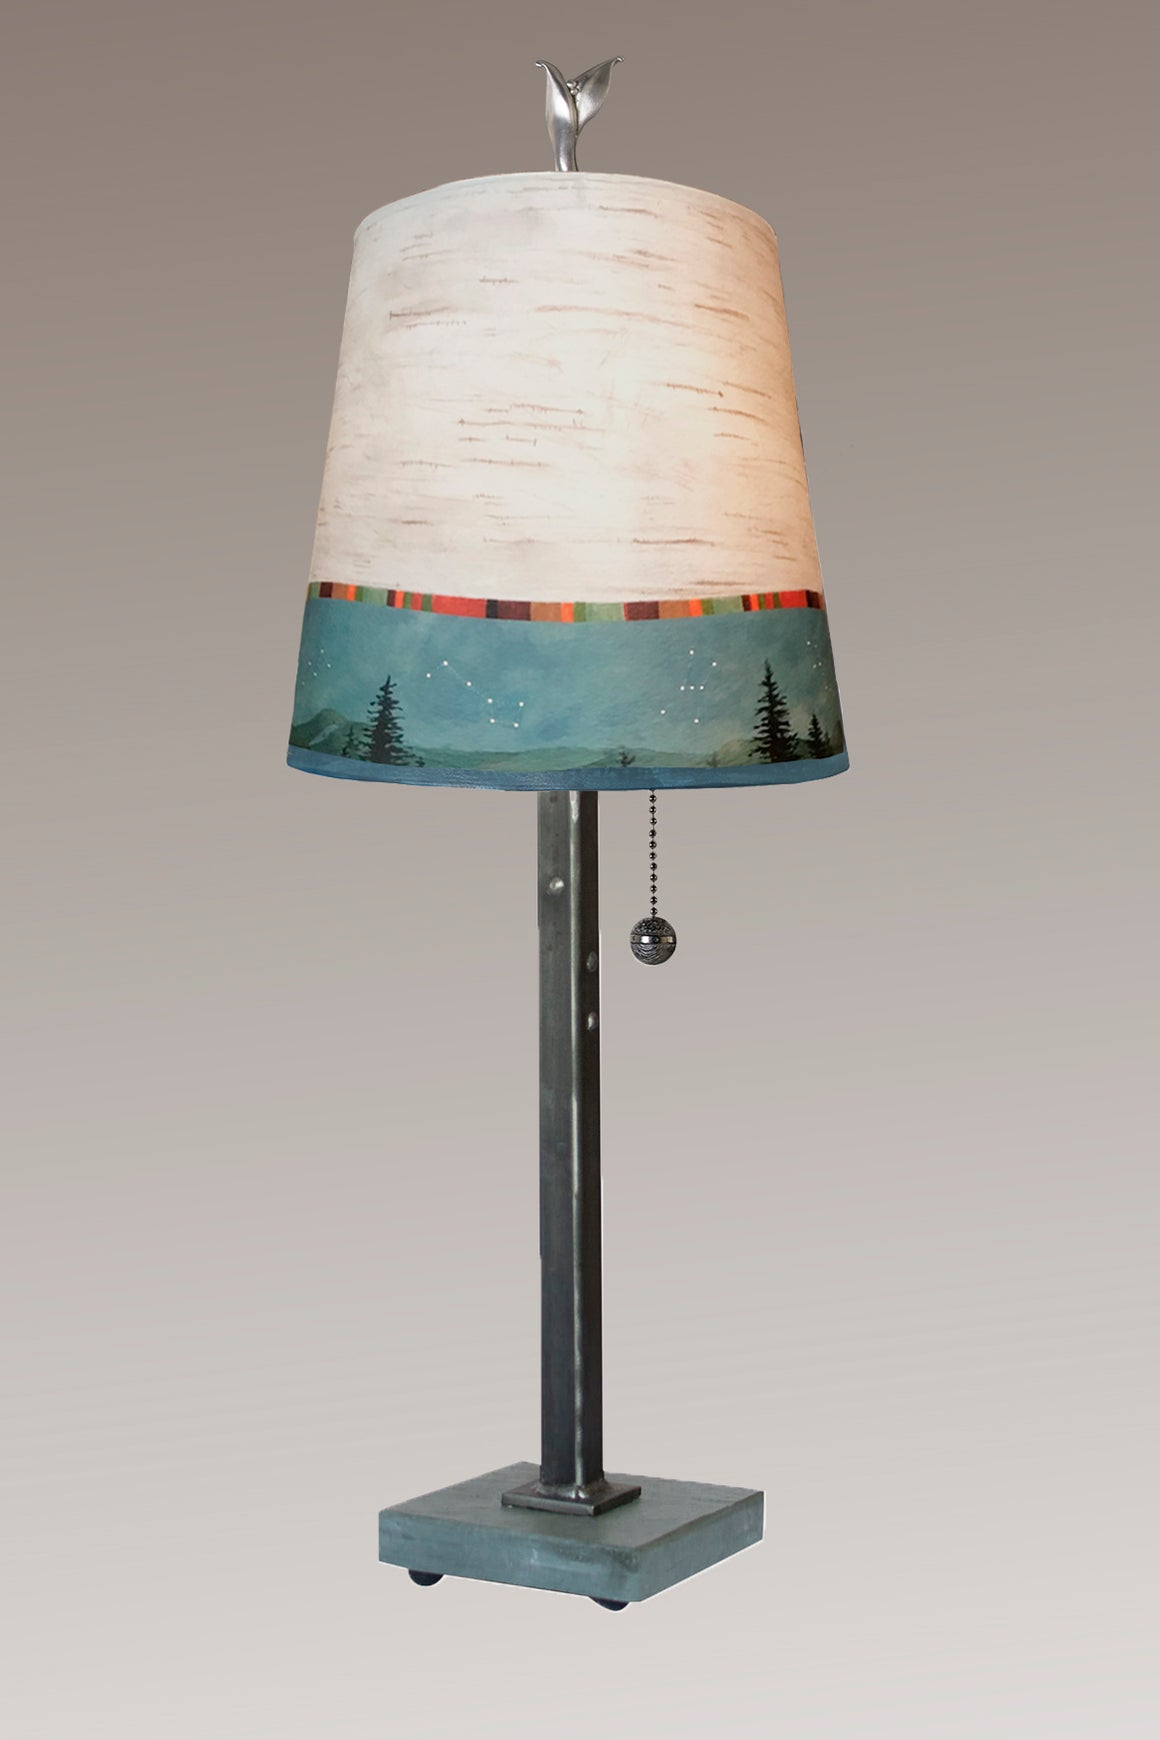 Steel Table Lamp on Vermont Slate Base with Small Drum Shade in Birch Midnight